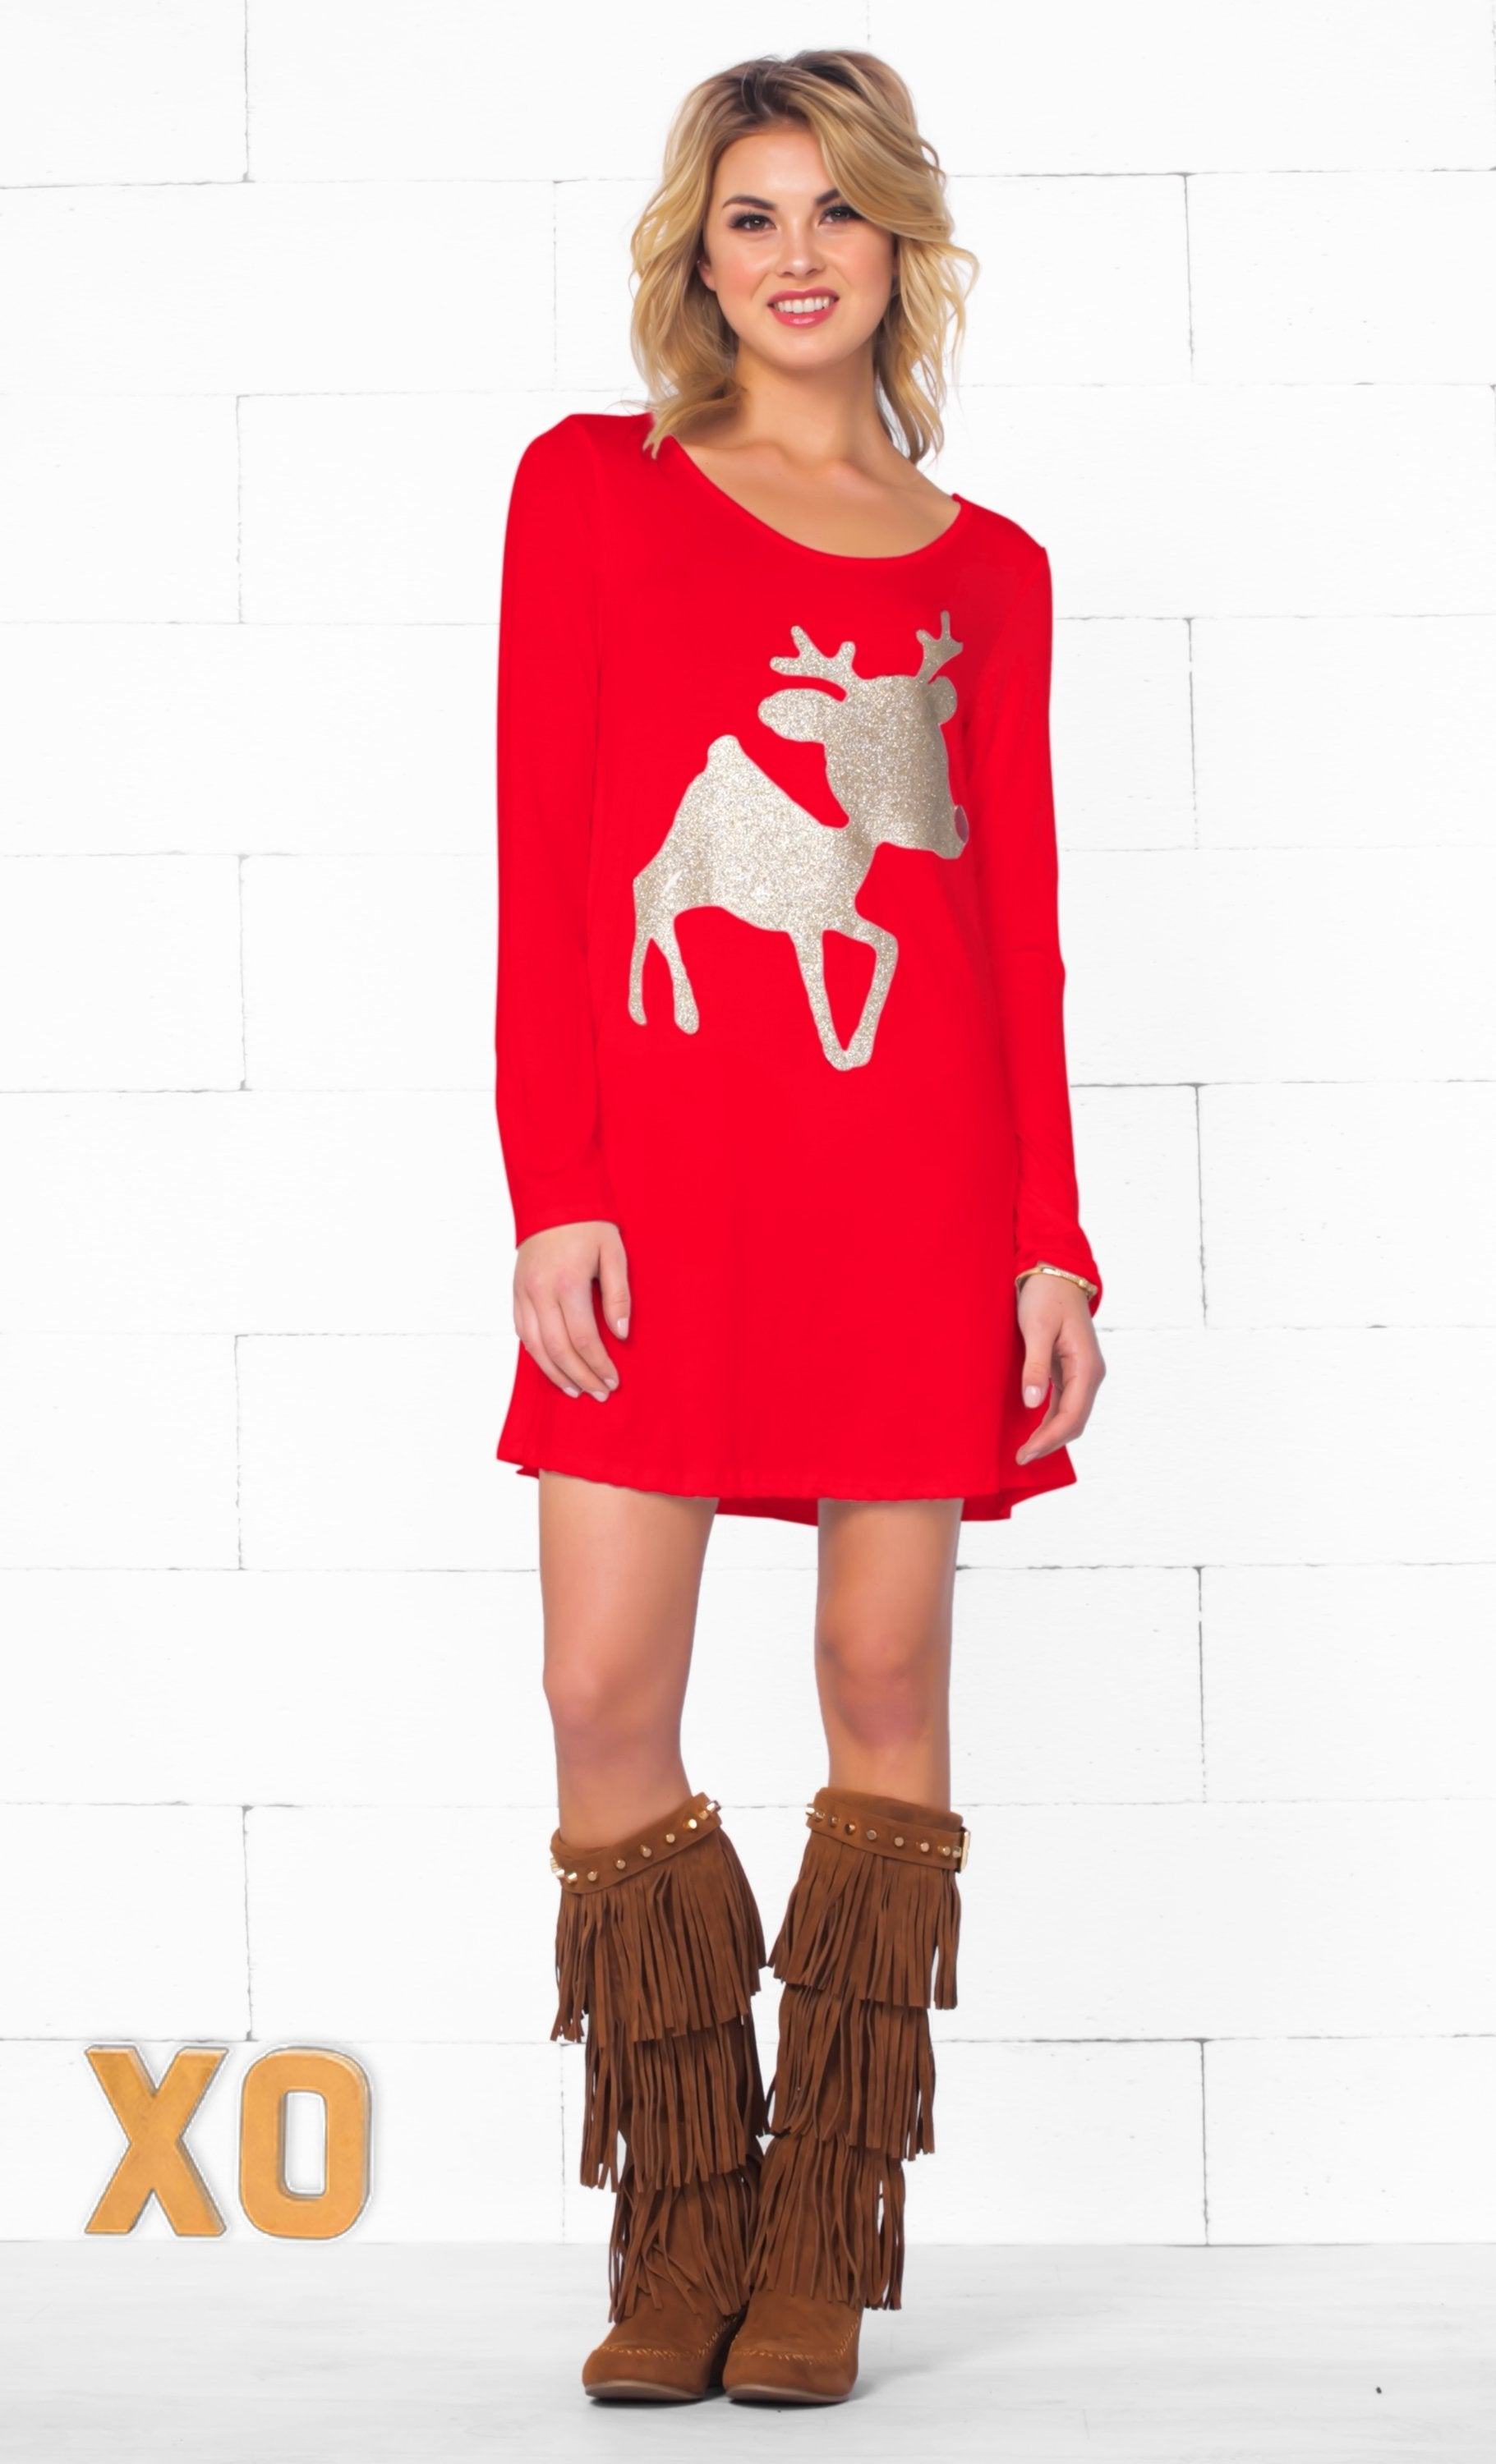 Christmas Cutie Gold Glitter Red Nose Reindeer Long Sleeve Scoop Neck Tunic Top Mini Dress - Sold Out